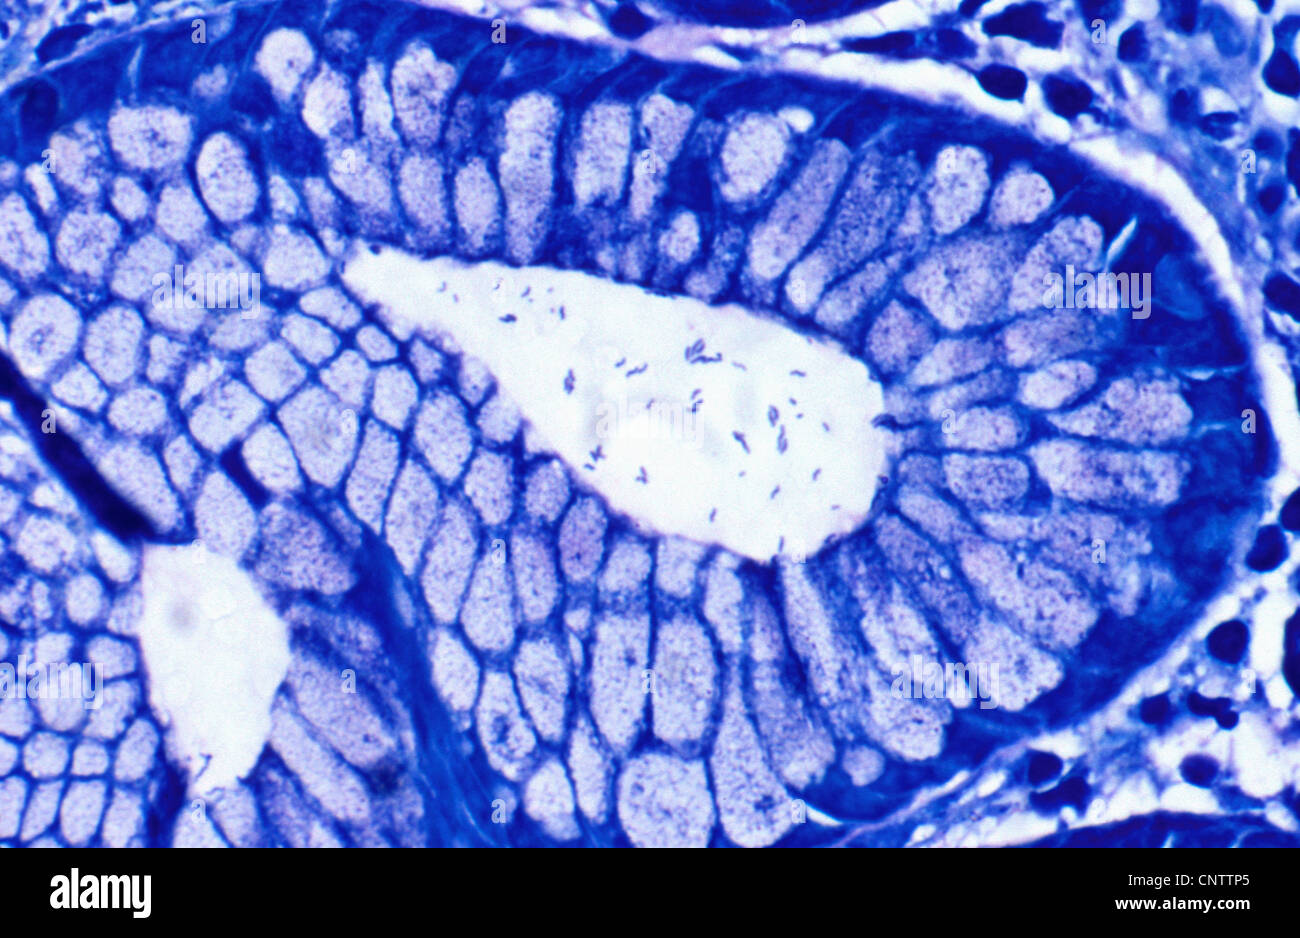 Helicobacter pylori in antral crypt - Stock Image